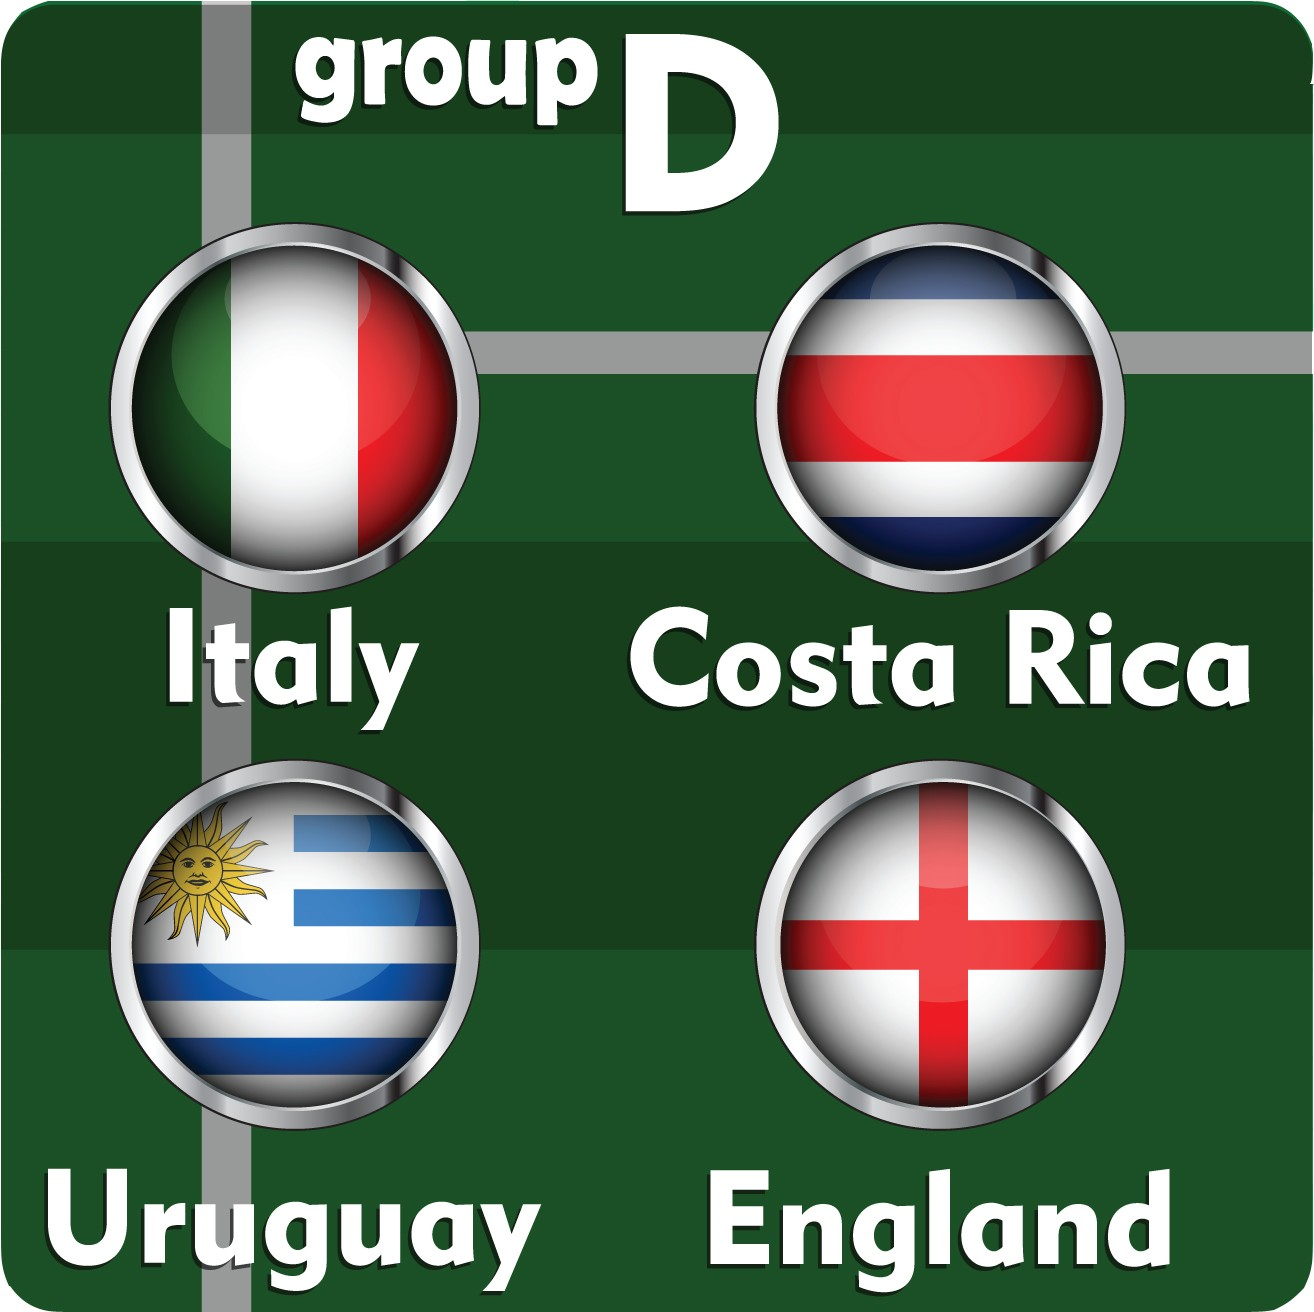 2014fifaworldcupbrazil.-Group-D-Costa-Rica-England-Italy-Uruguay.jpg